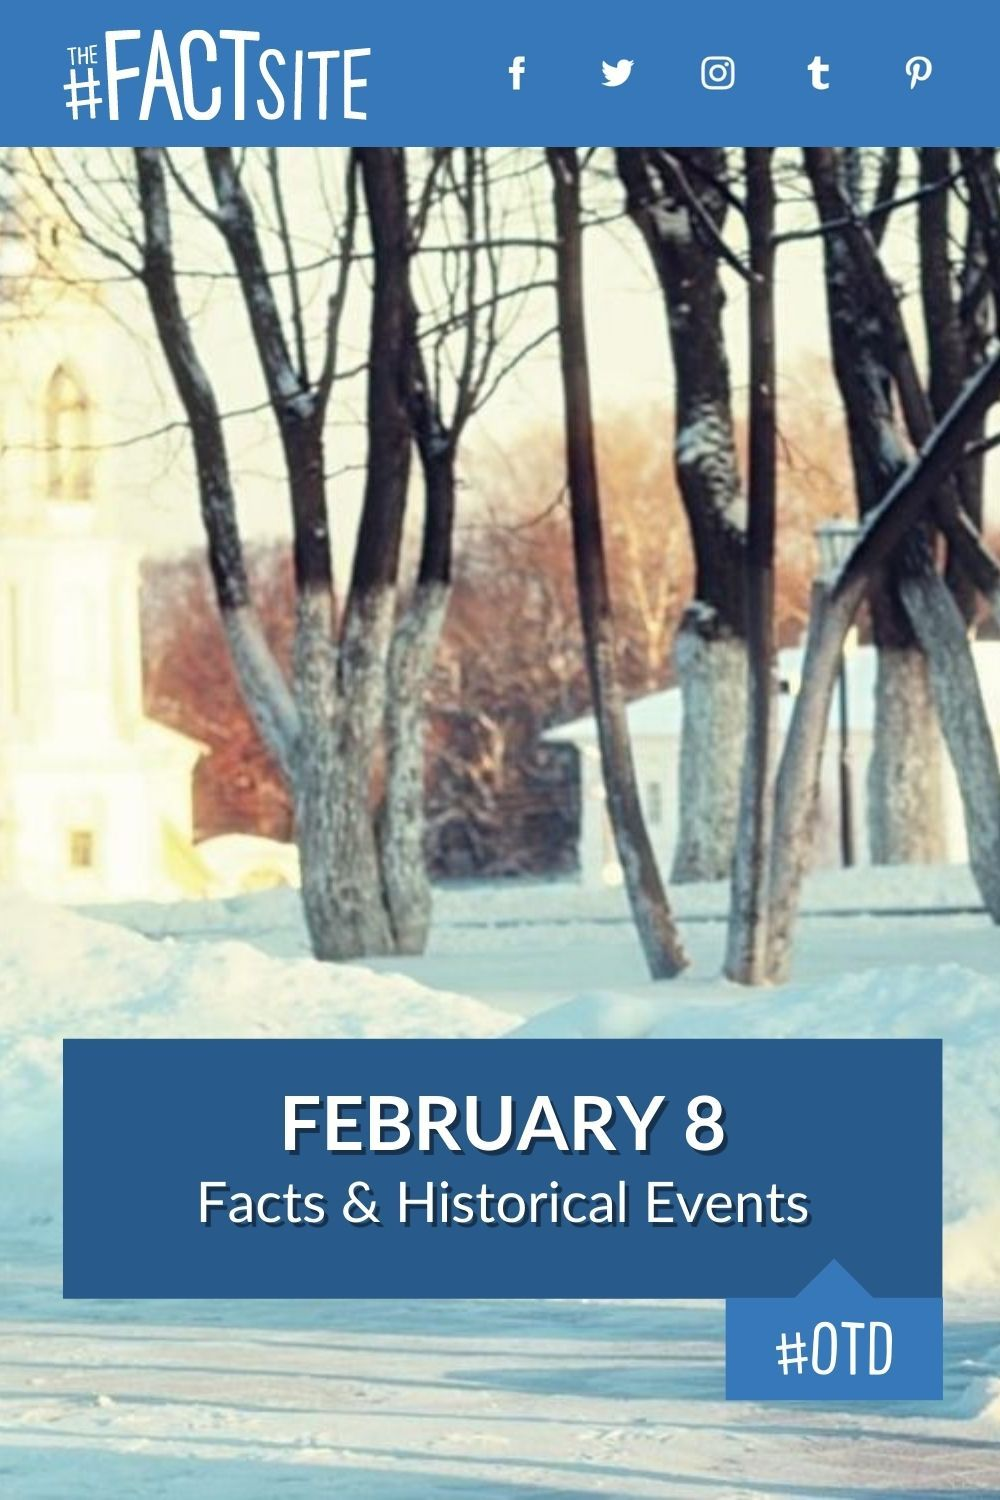 Facts & Historic Events That Happened on February 8